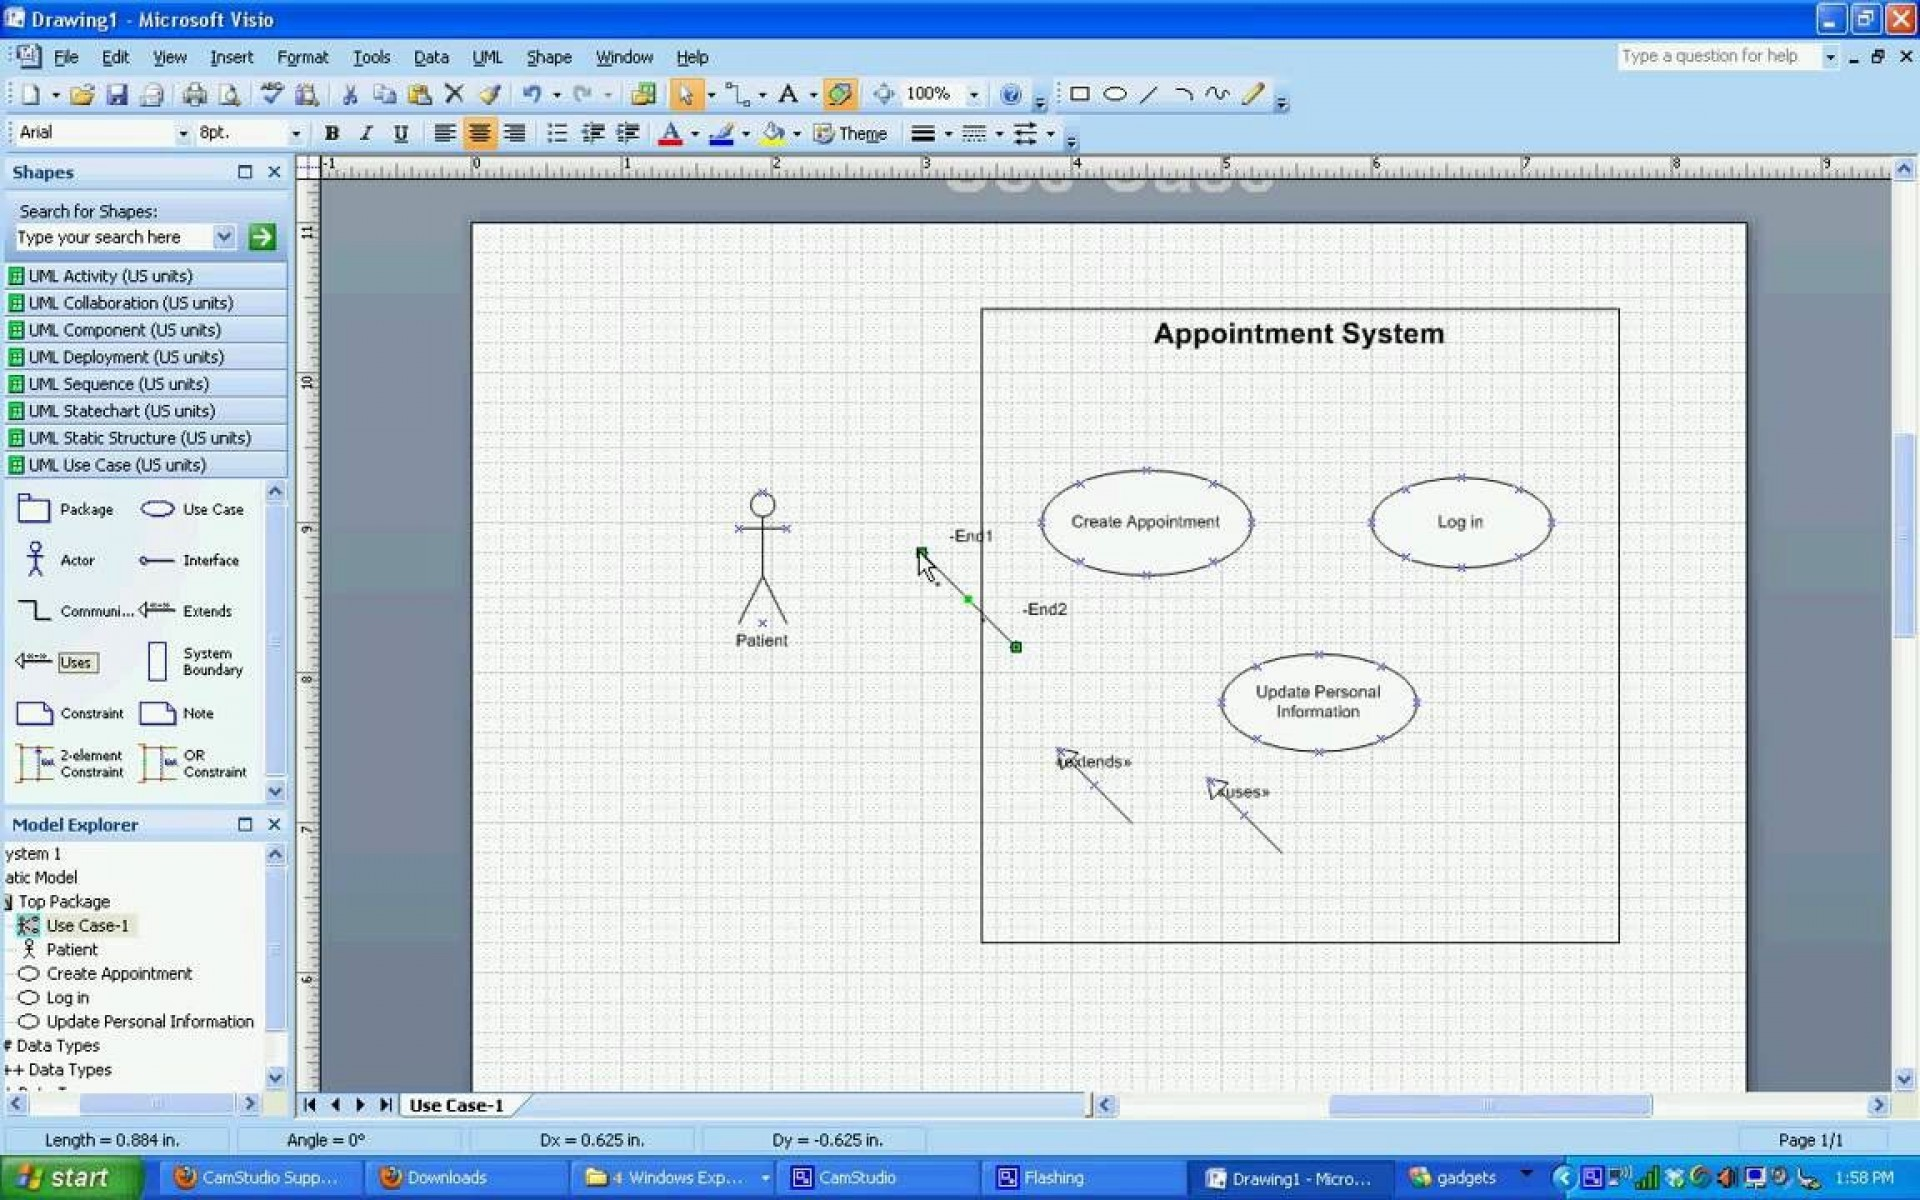 001 Awesome Uml Diagram Template Visio 2010 Inspiration  Model Download Clas1920